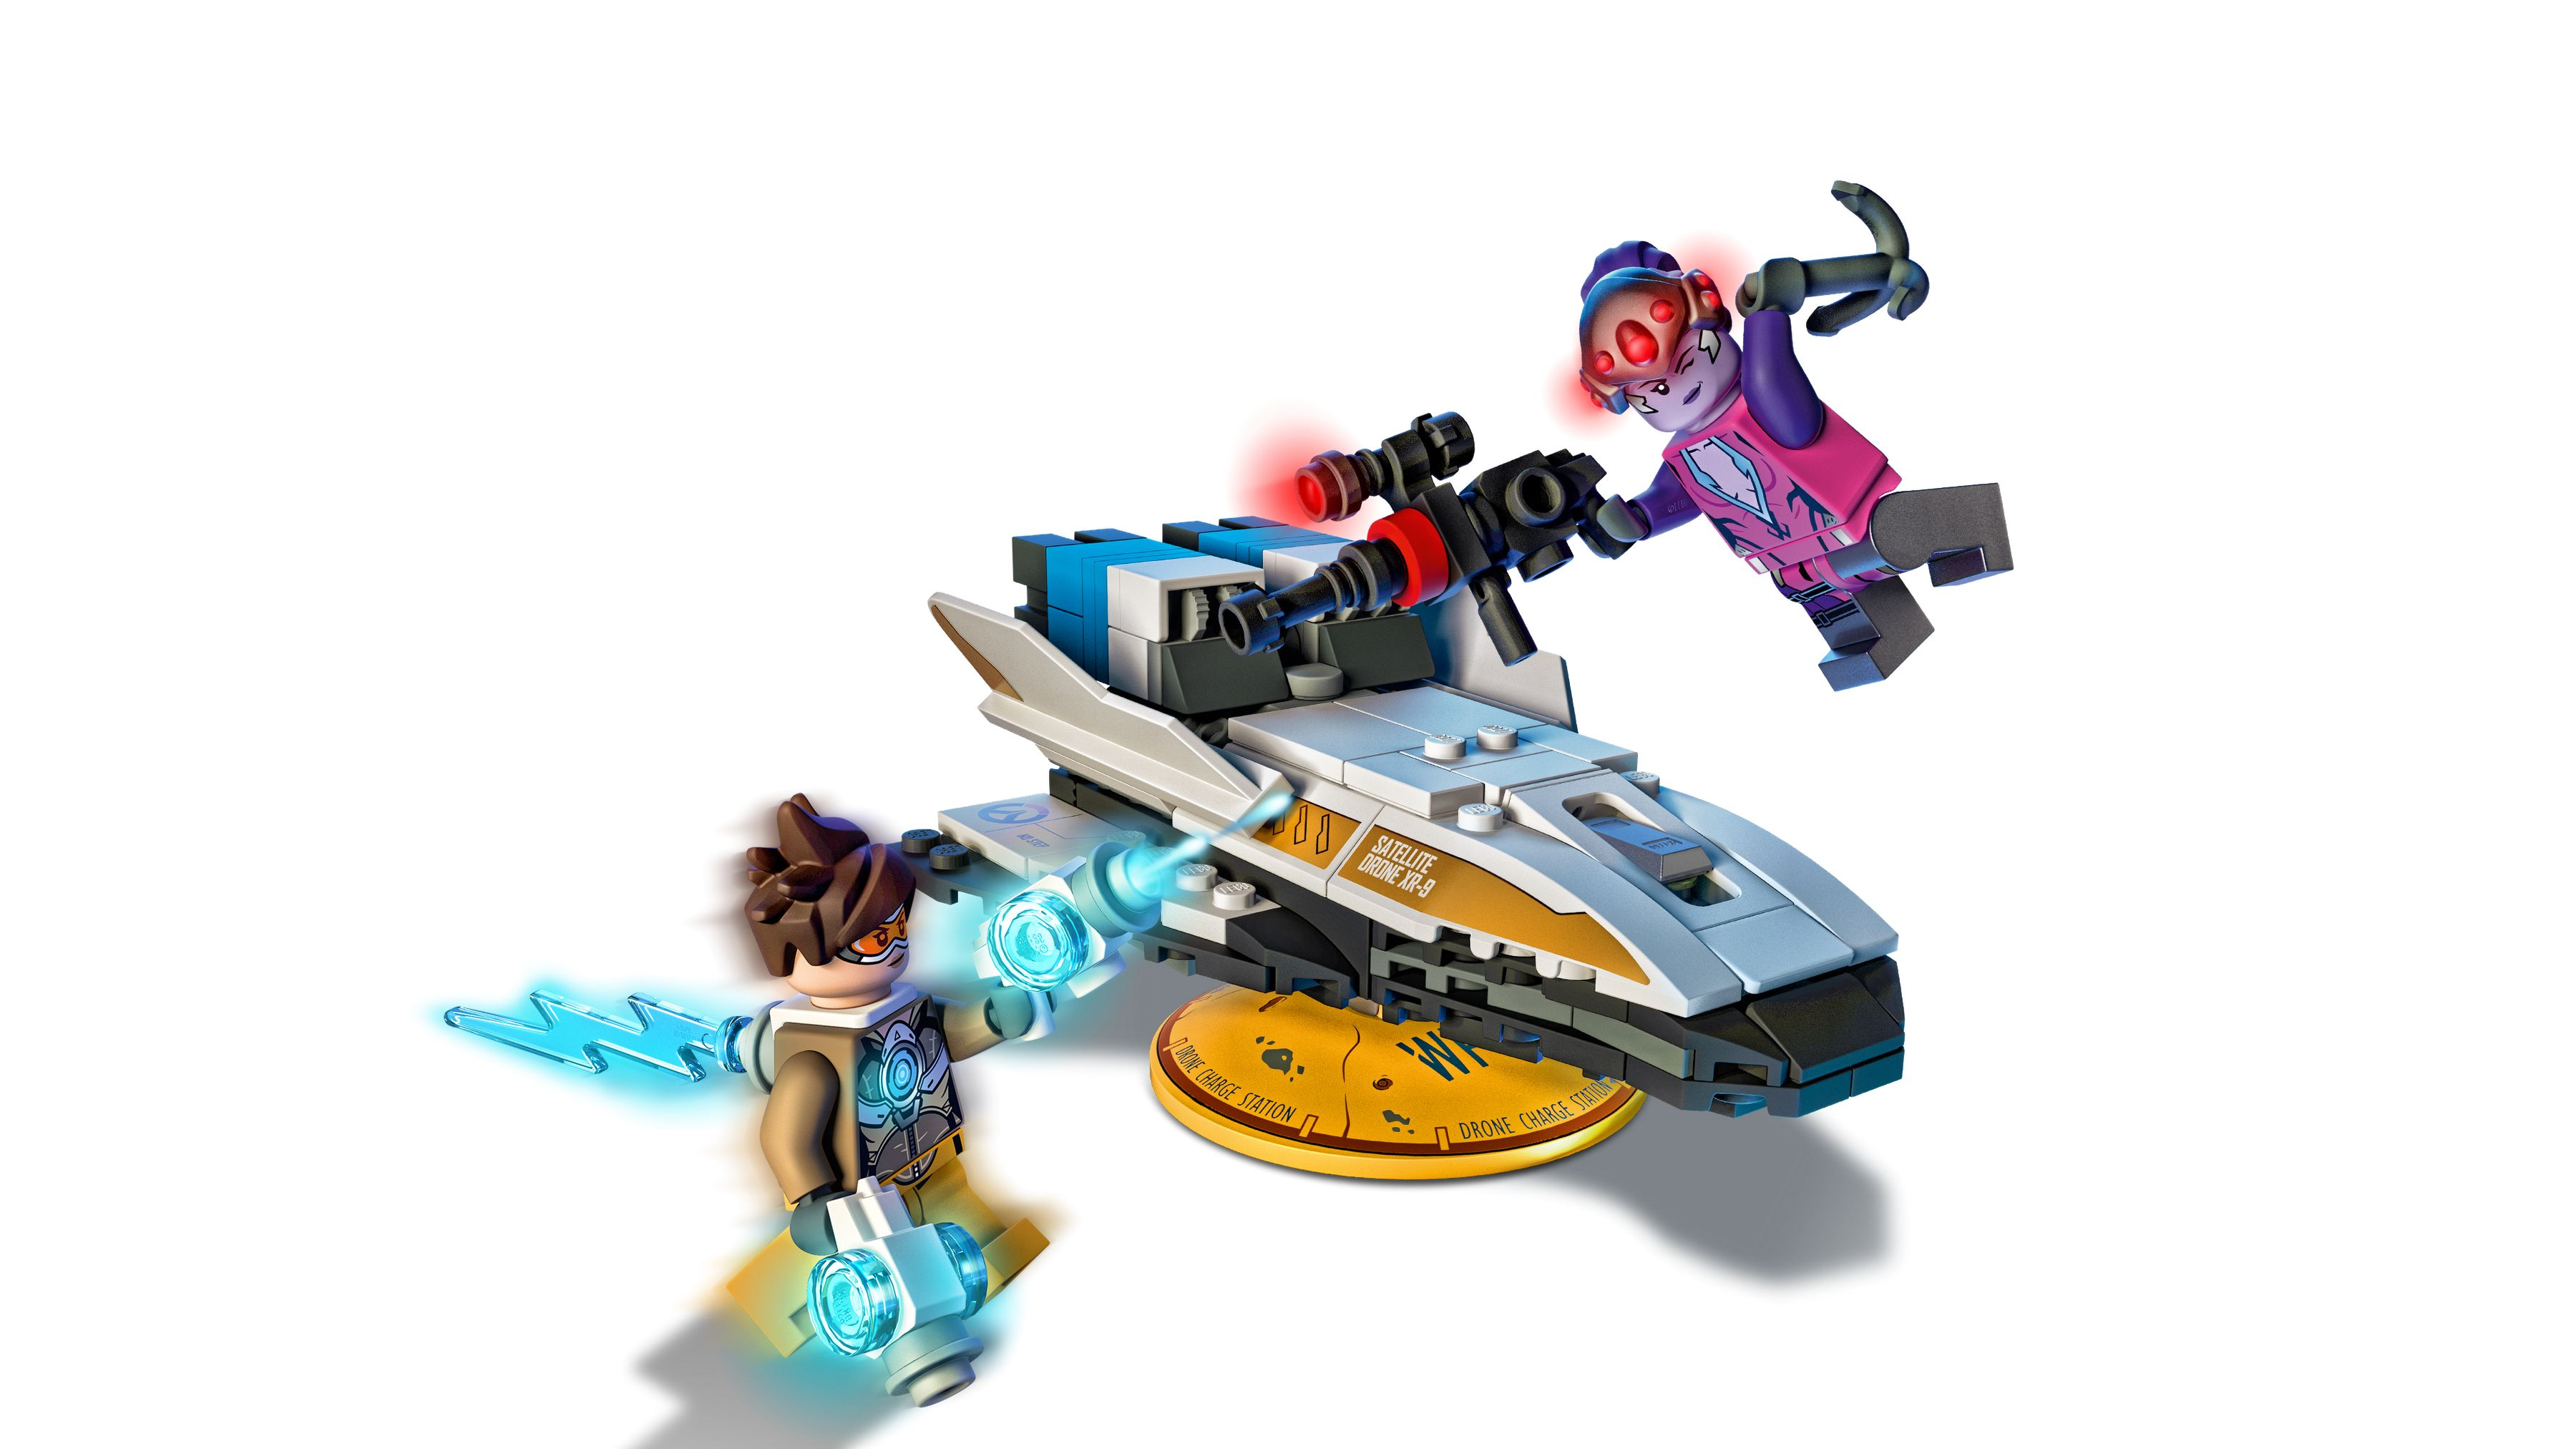 LEGO Overwatch 75970 Tracer vs. Widowmaker LEGO_75970_alt2.jpg